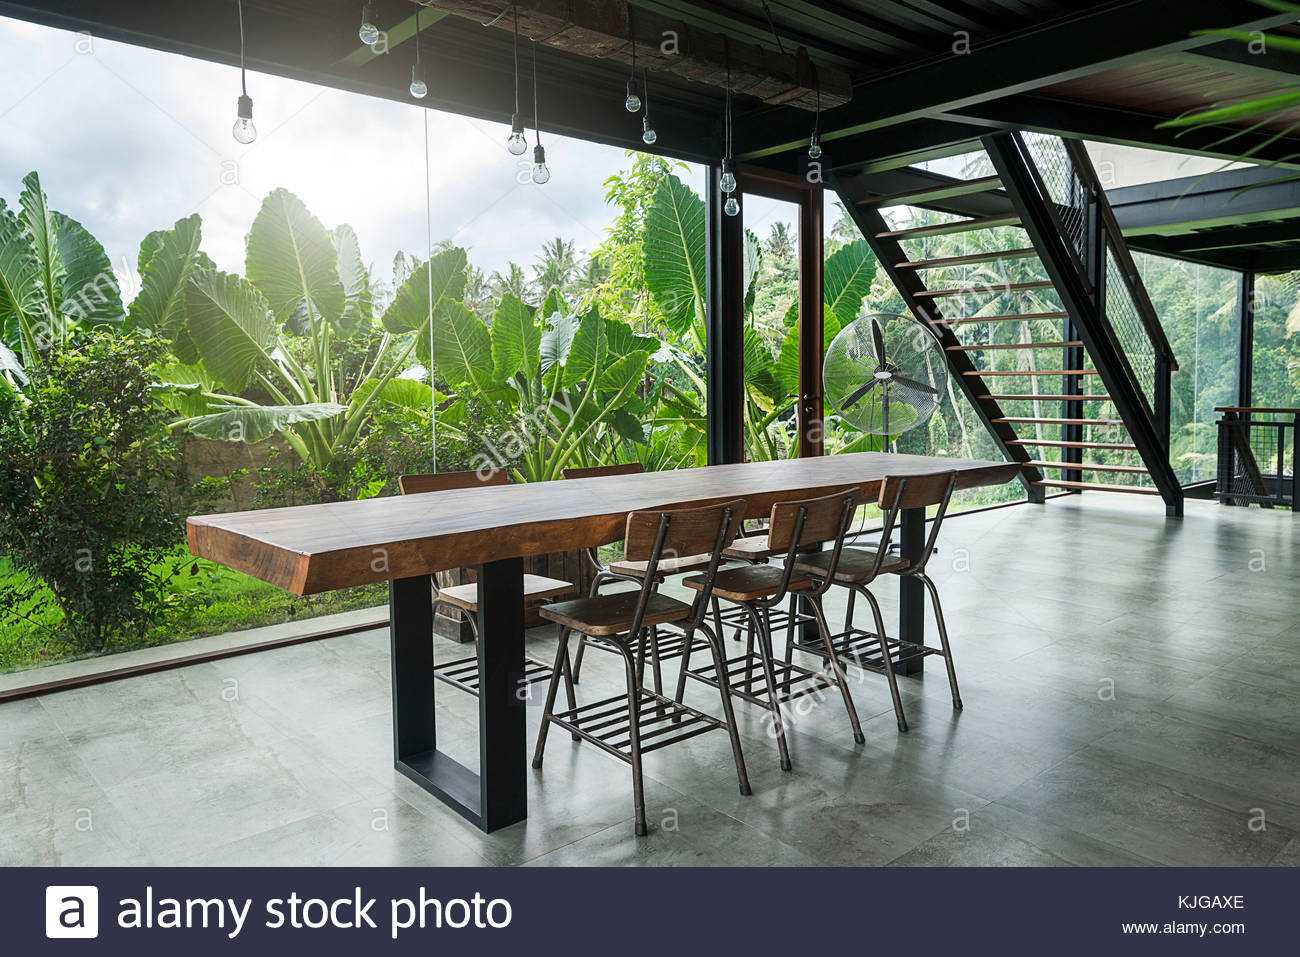 High Quality Modern Wooden Table In Contemporary Design House With Glass Facade  Surrounded By Lush Tropical Garden